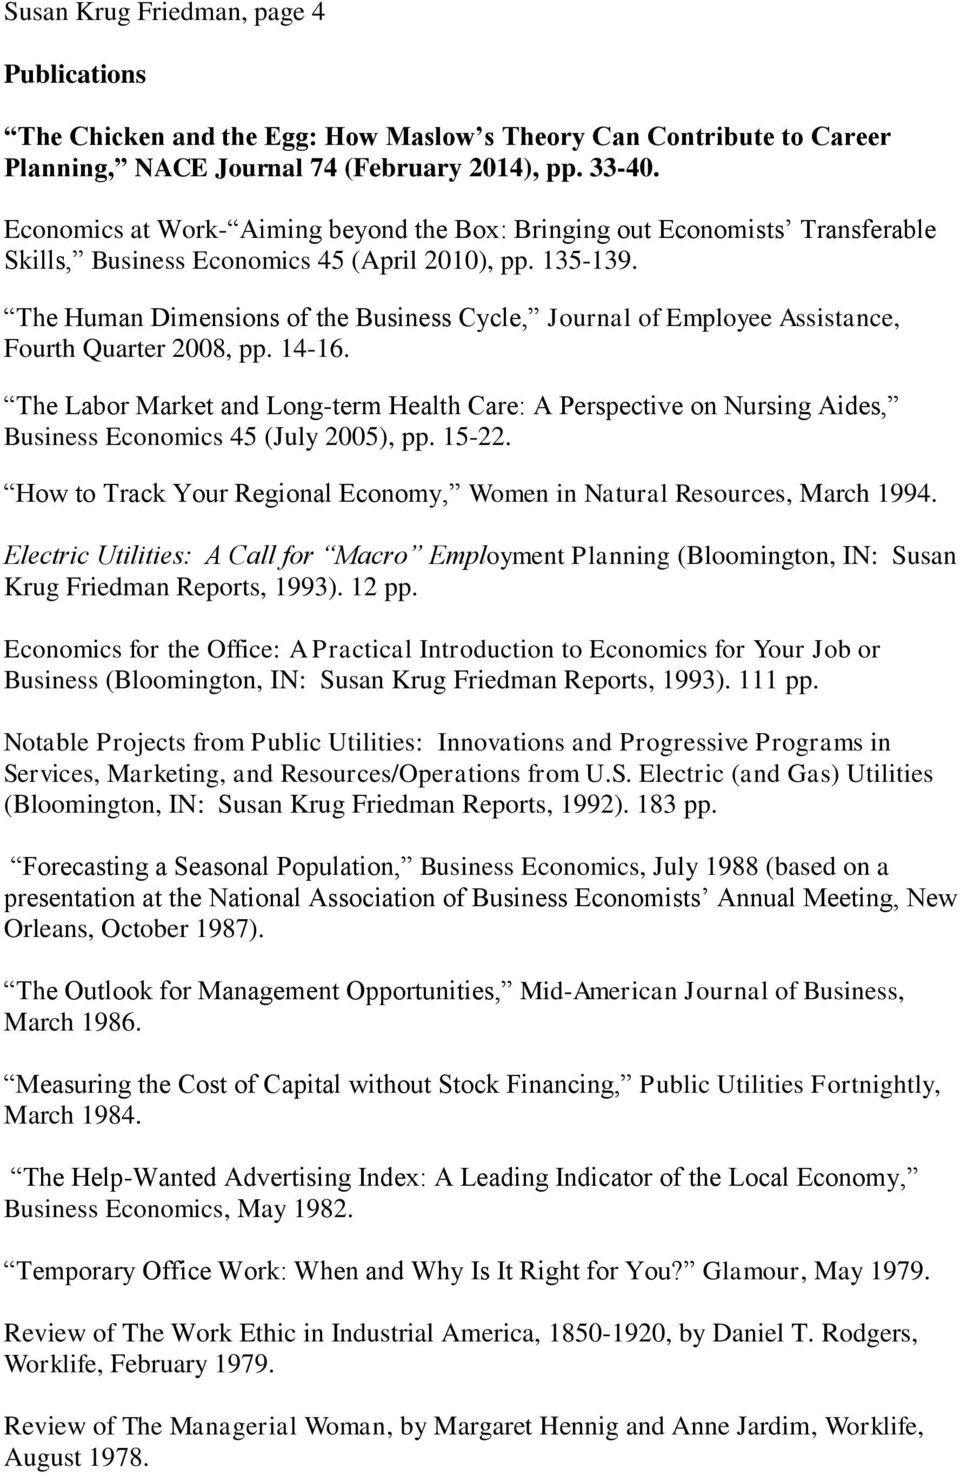 The Human Dimensions of the Business Cycle, Journal of Employee Assistance, Fourth Quarter 2008, pp. 14-16.